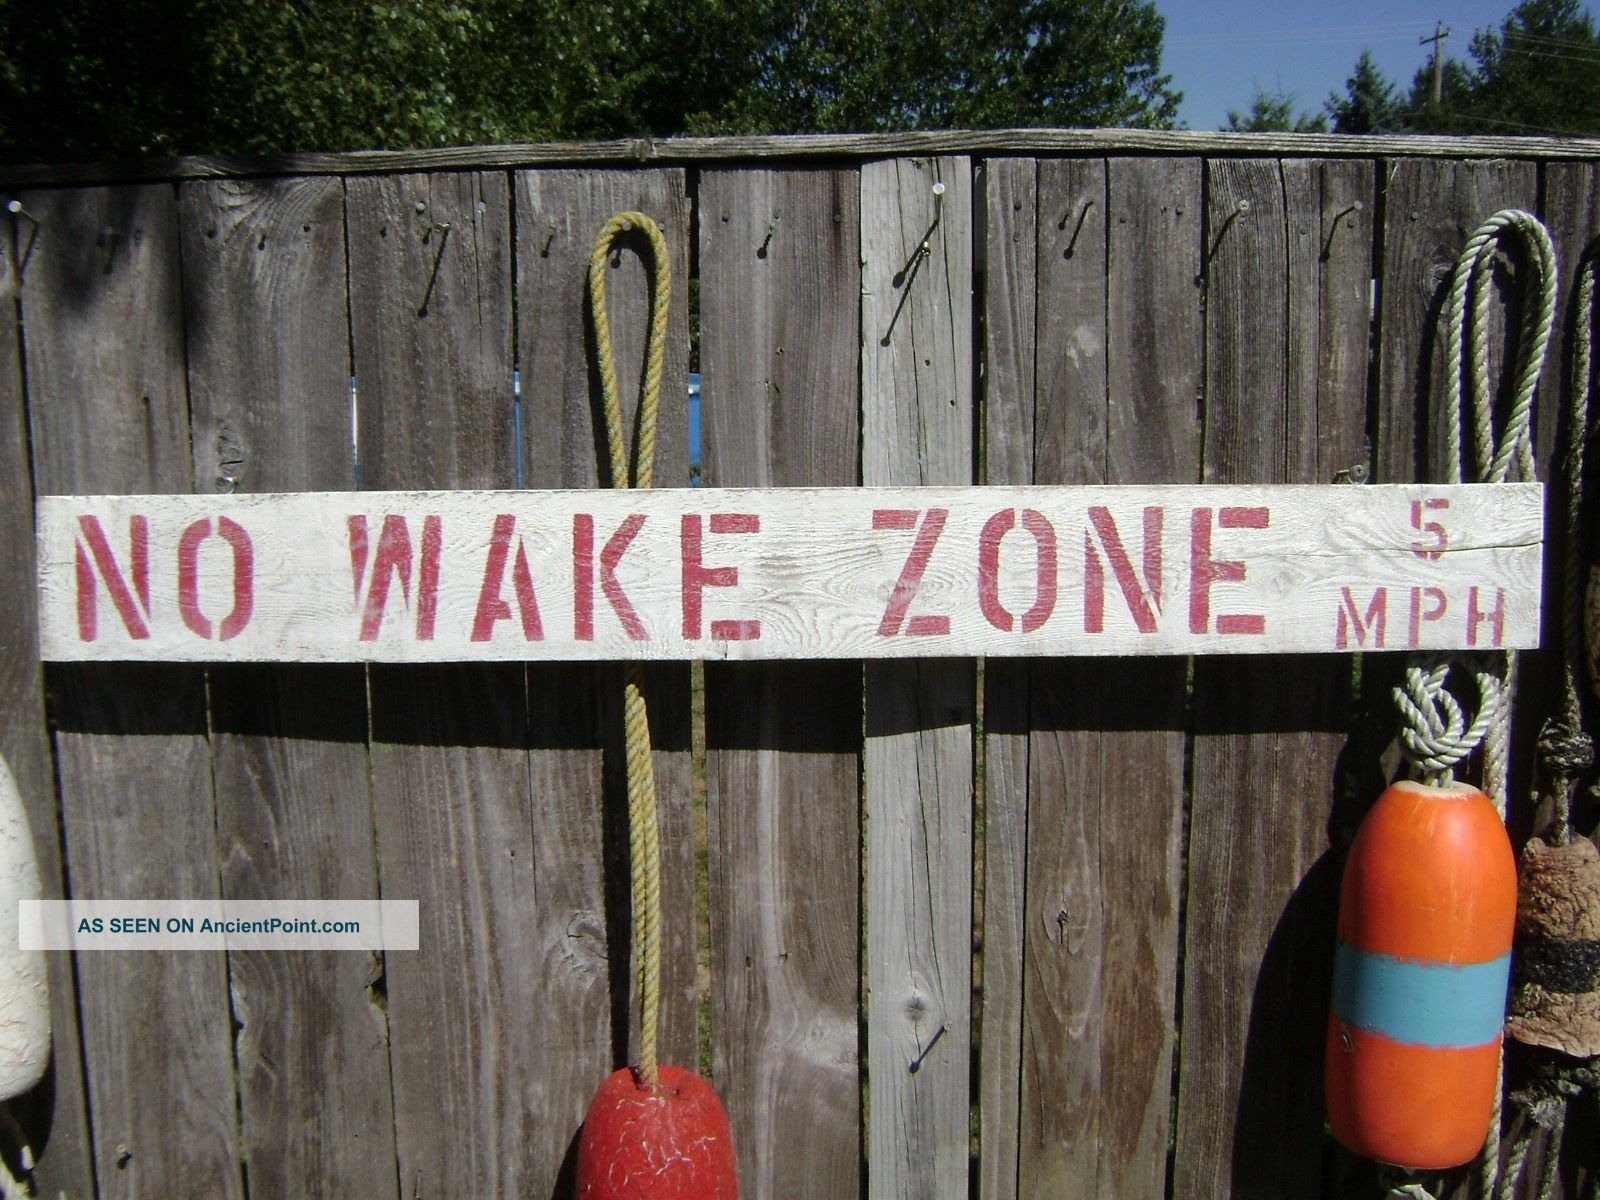 48 Inch Wood Hand Painted No Wake Zone 5mph Sign Nautical Seafood (s231) Plaques & Signs photo